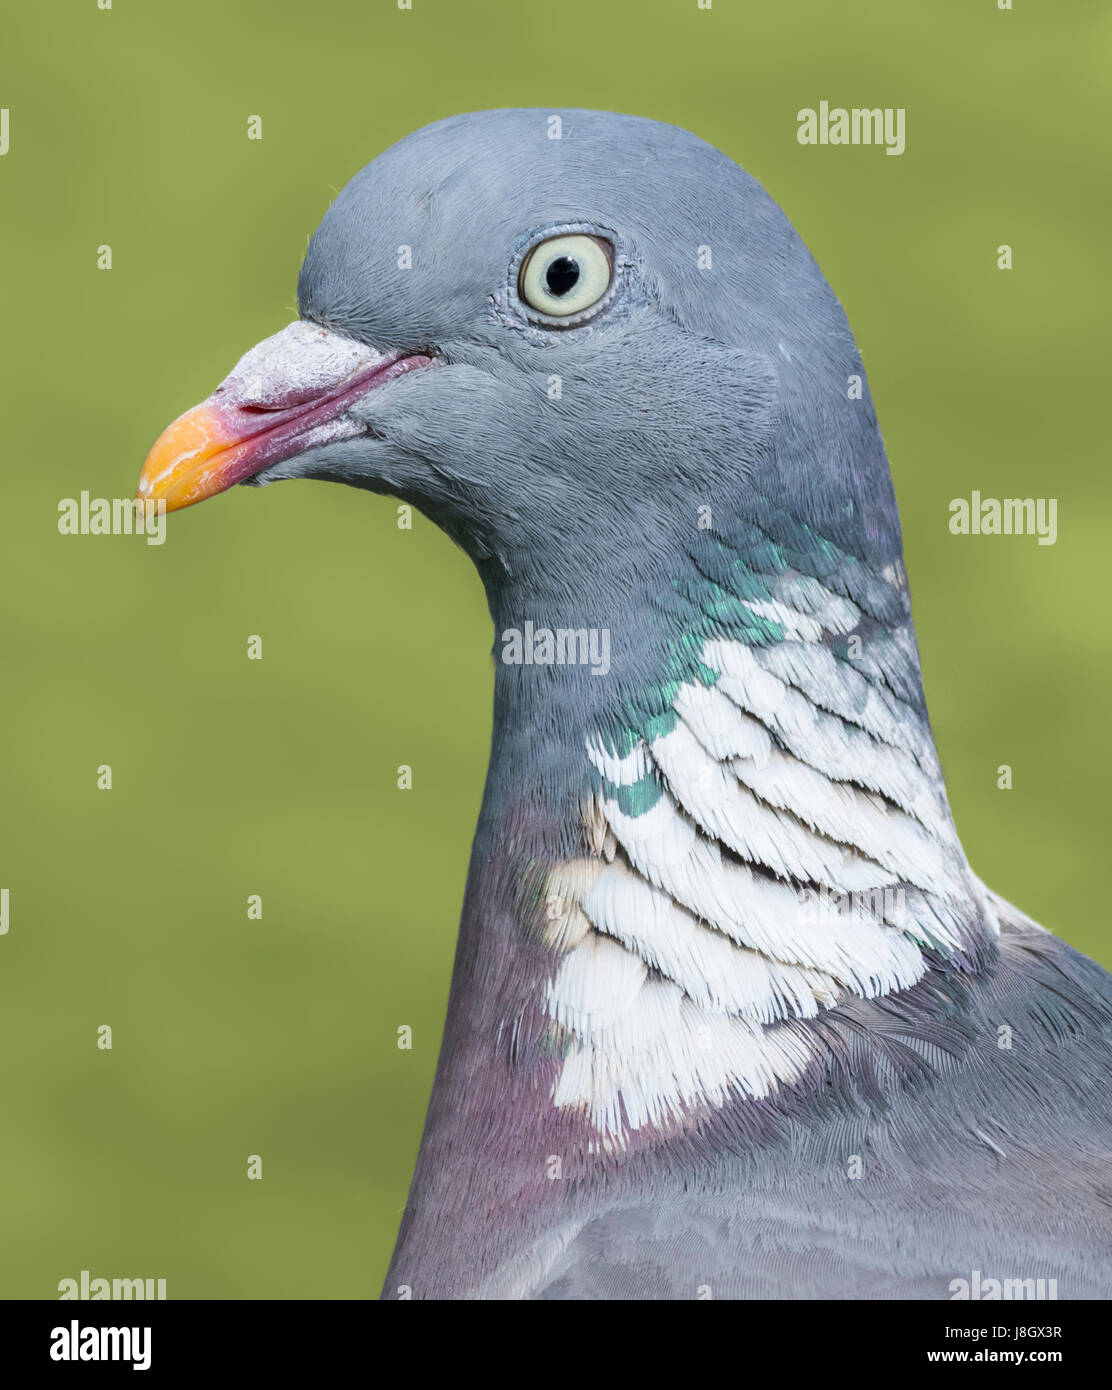 pigeon-head-and-neck-macro-common-wood-pigeon-columba-palumbus-closeup-J8GX3R.jpg